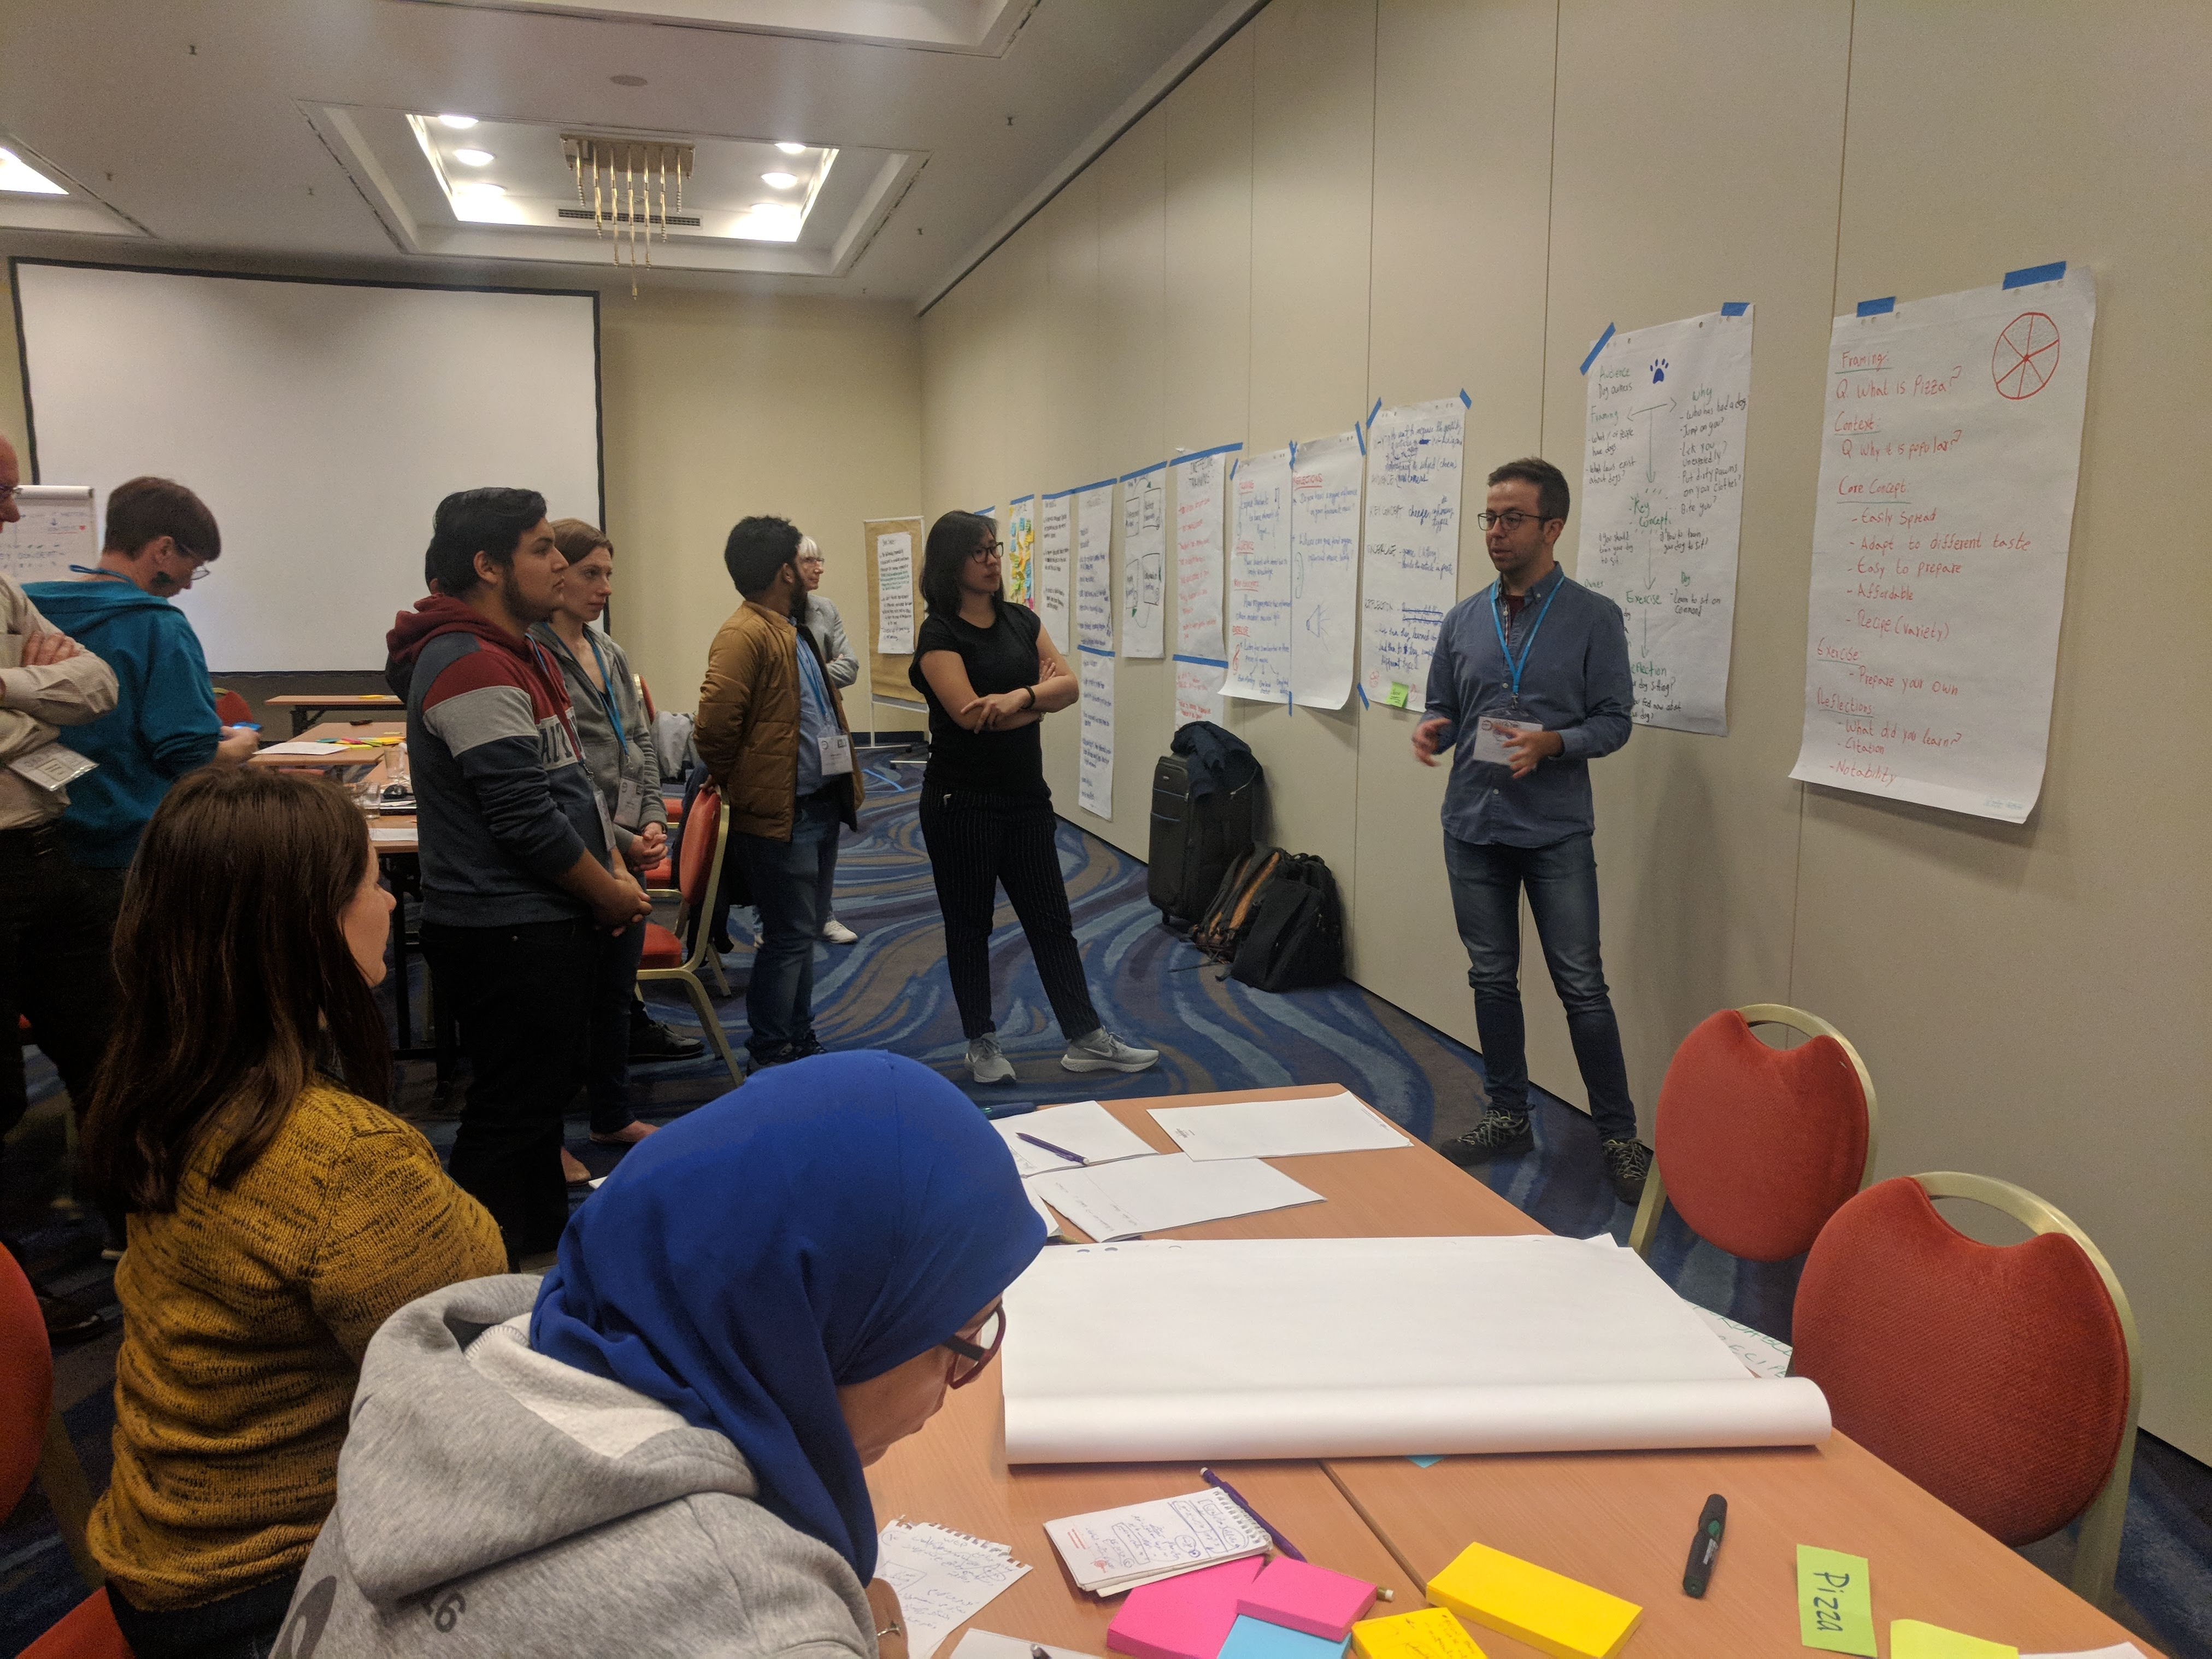 File:Training of Trainers - Wikimedia Summit 2019 Berlin 13.jpg - Wikimedia Commons